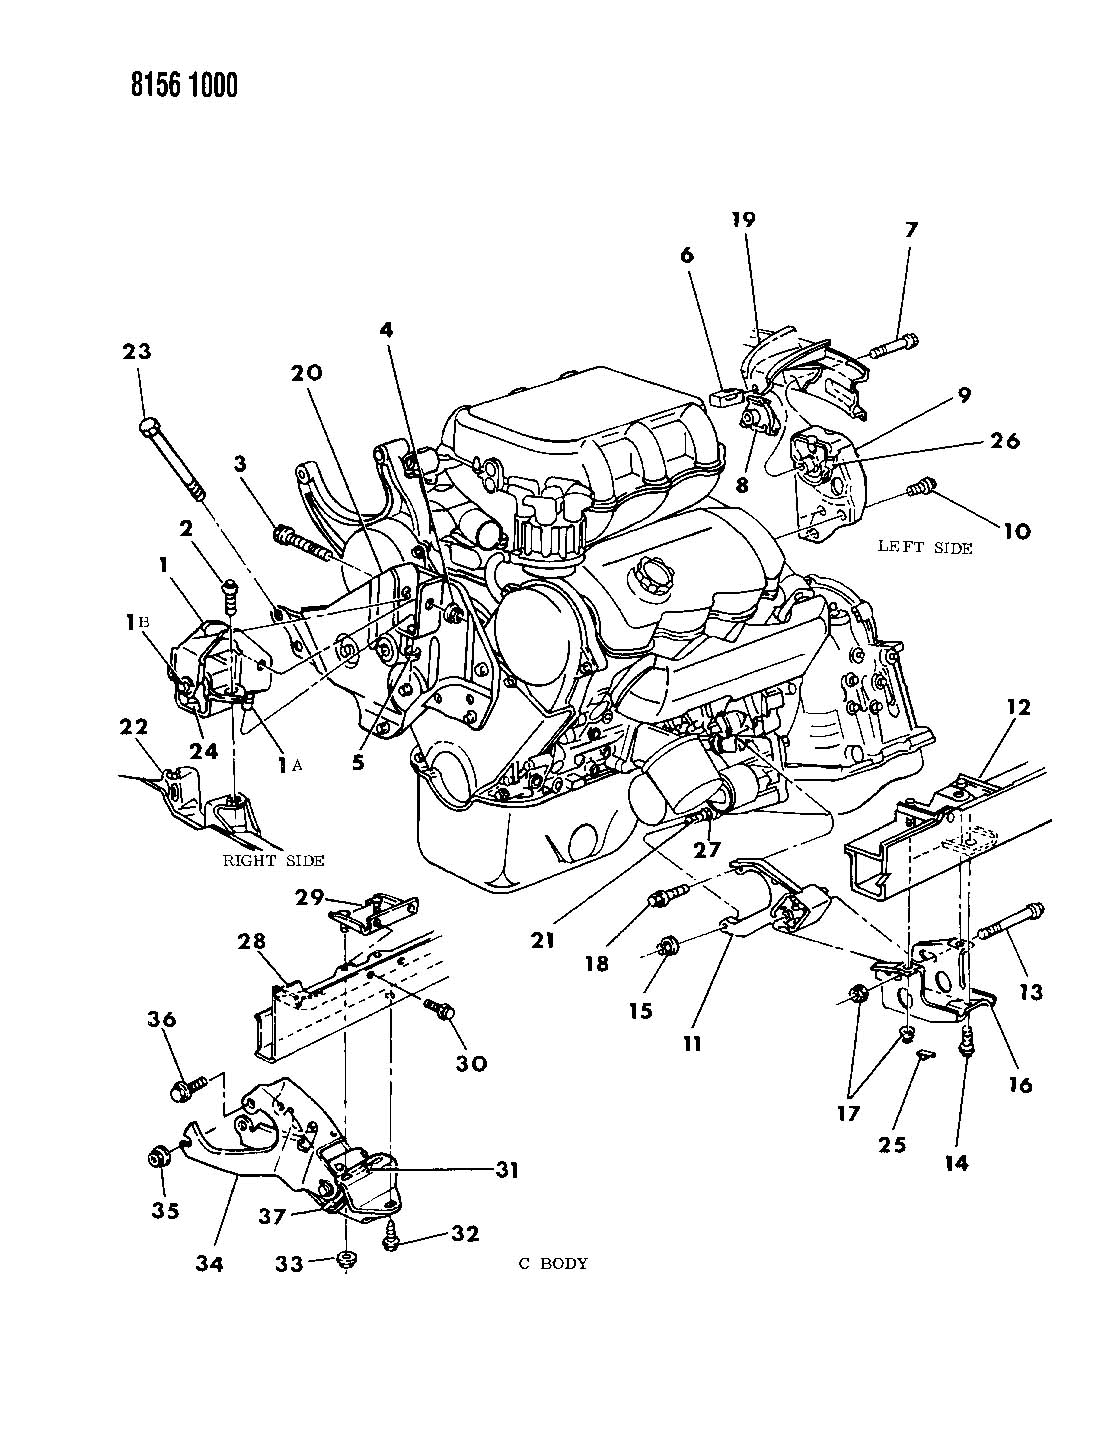 Plymouth Grand Voyager ENGINE MOUNTING 3.0 L ENGINE